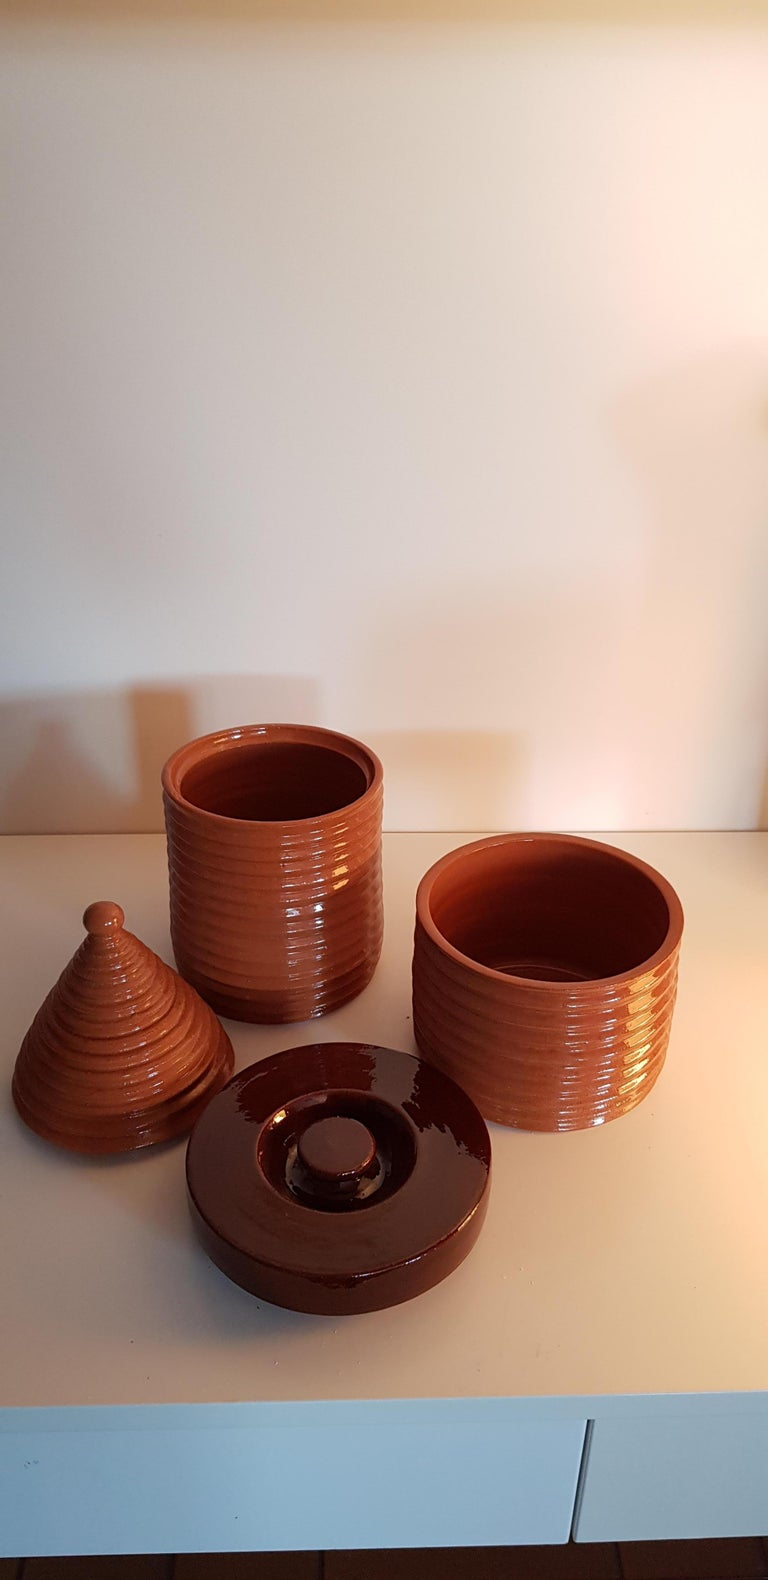 A particular set of pots that hides its function and becomes a decorative object. It is a typical artifact of the Italian folk tradition where balanced and healthy Puglian recipes are slow-cooked, near the barbeque: these pots suits contemporary